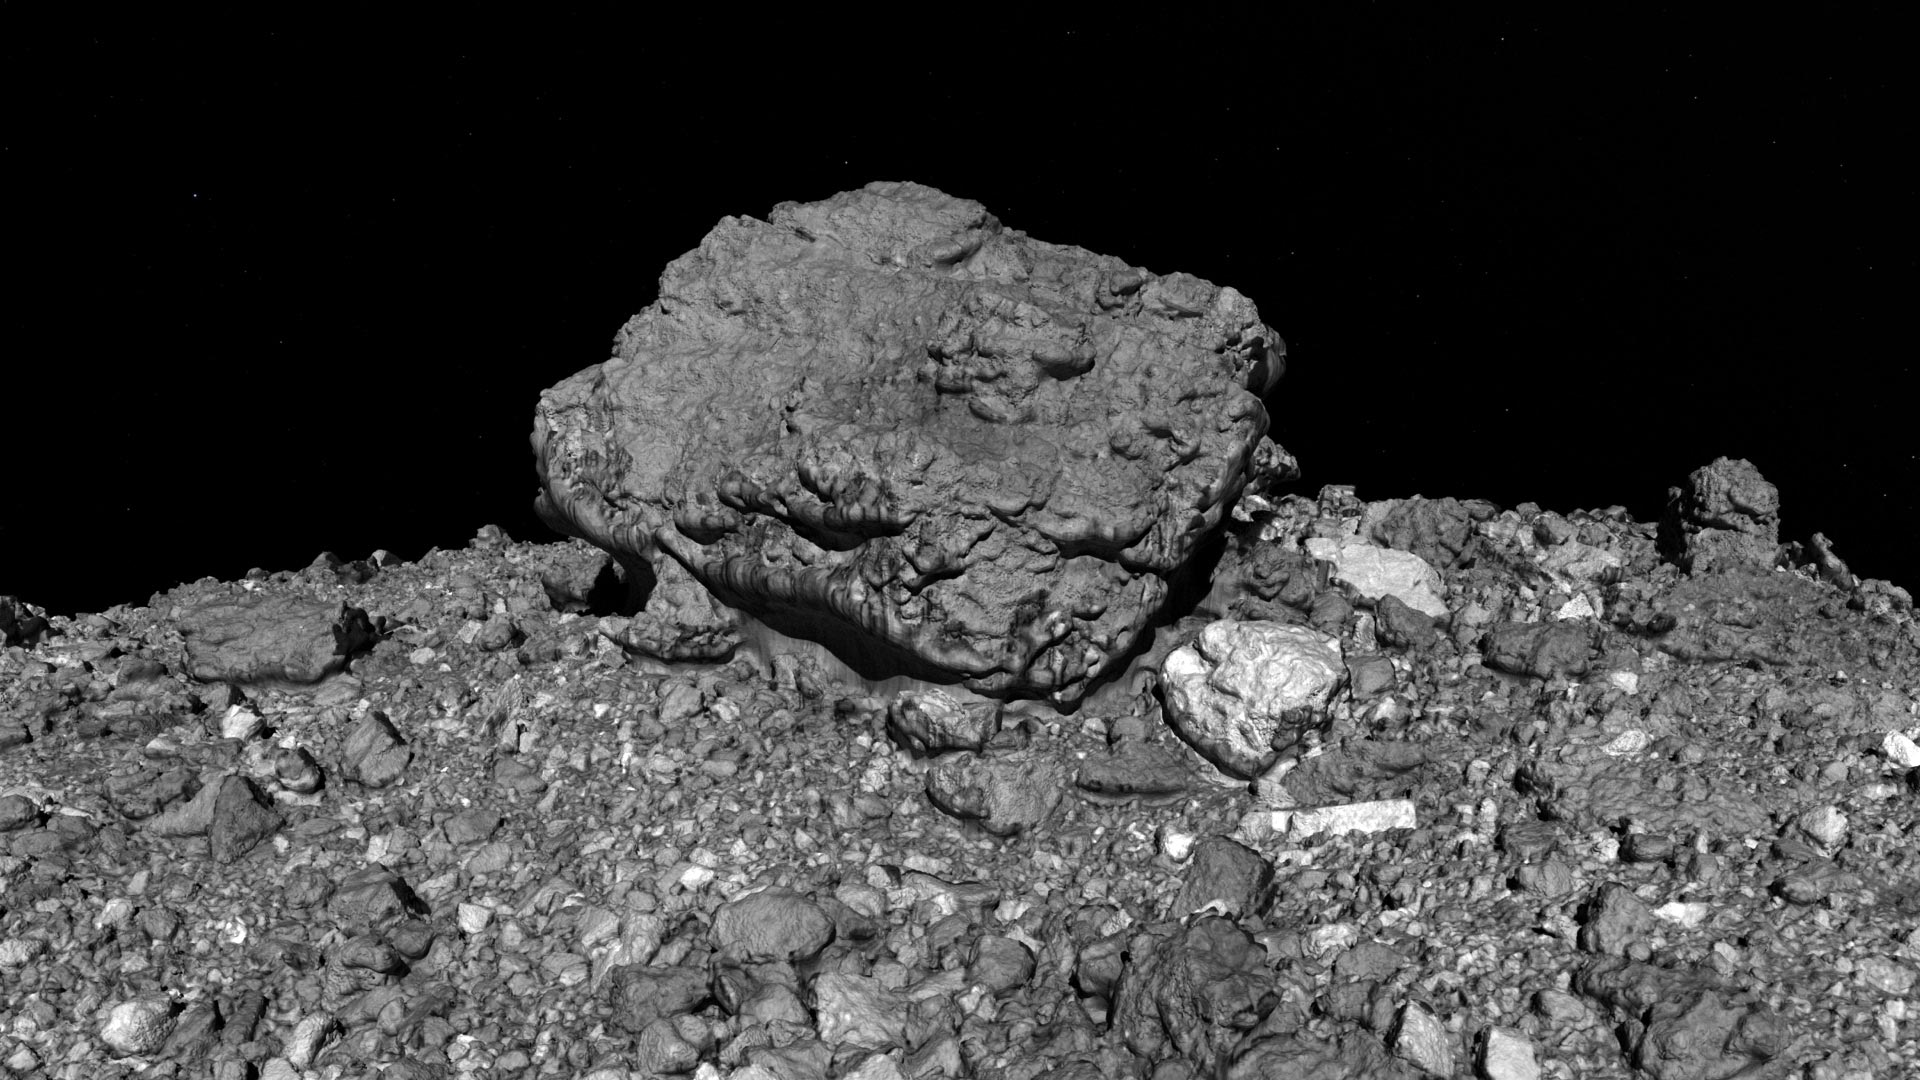 NASA OSIRIS-REx Mission Helps Solve a Mystery: Why Are Some Asteroid Surfaces Rocky? - SciTechDaily